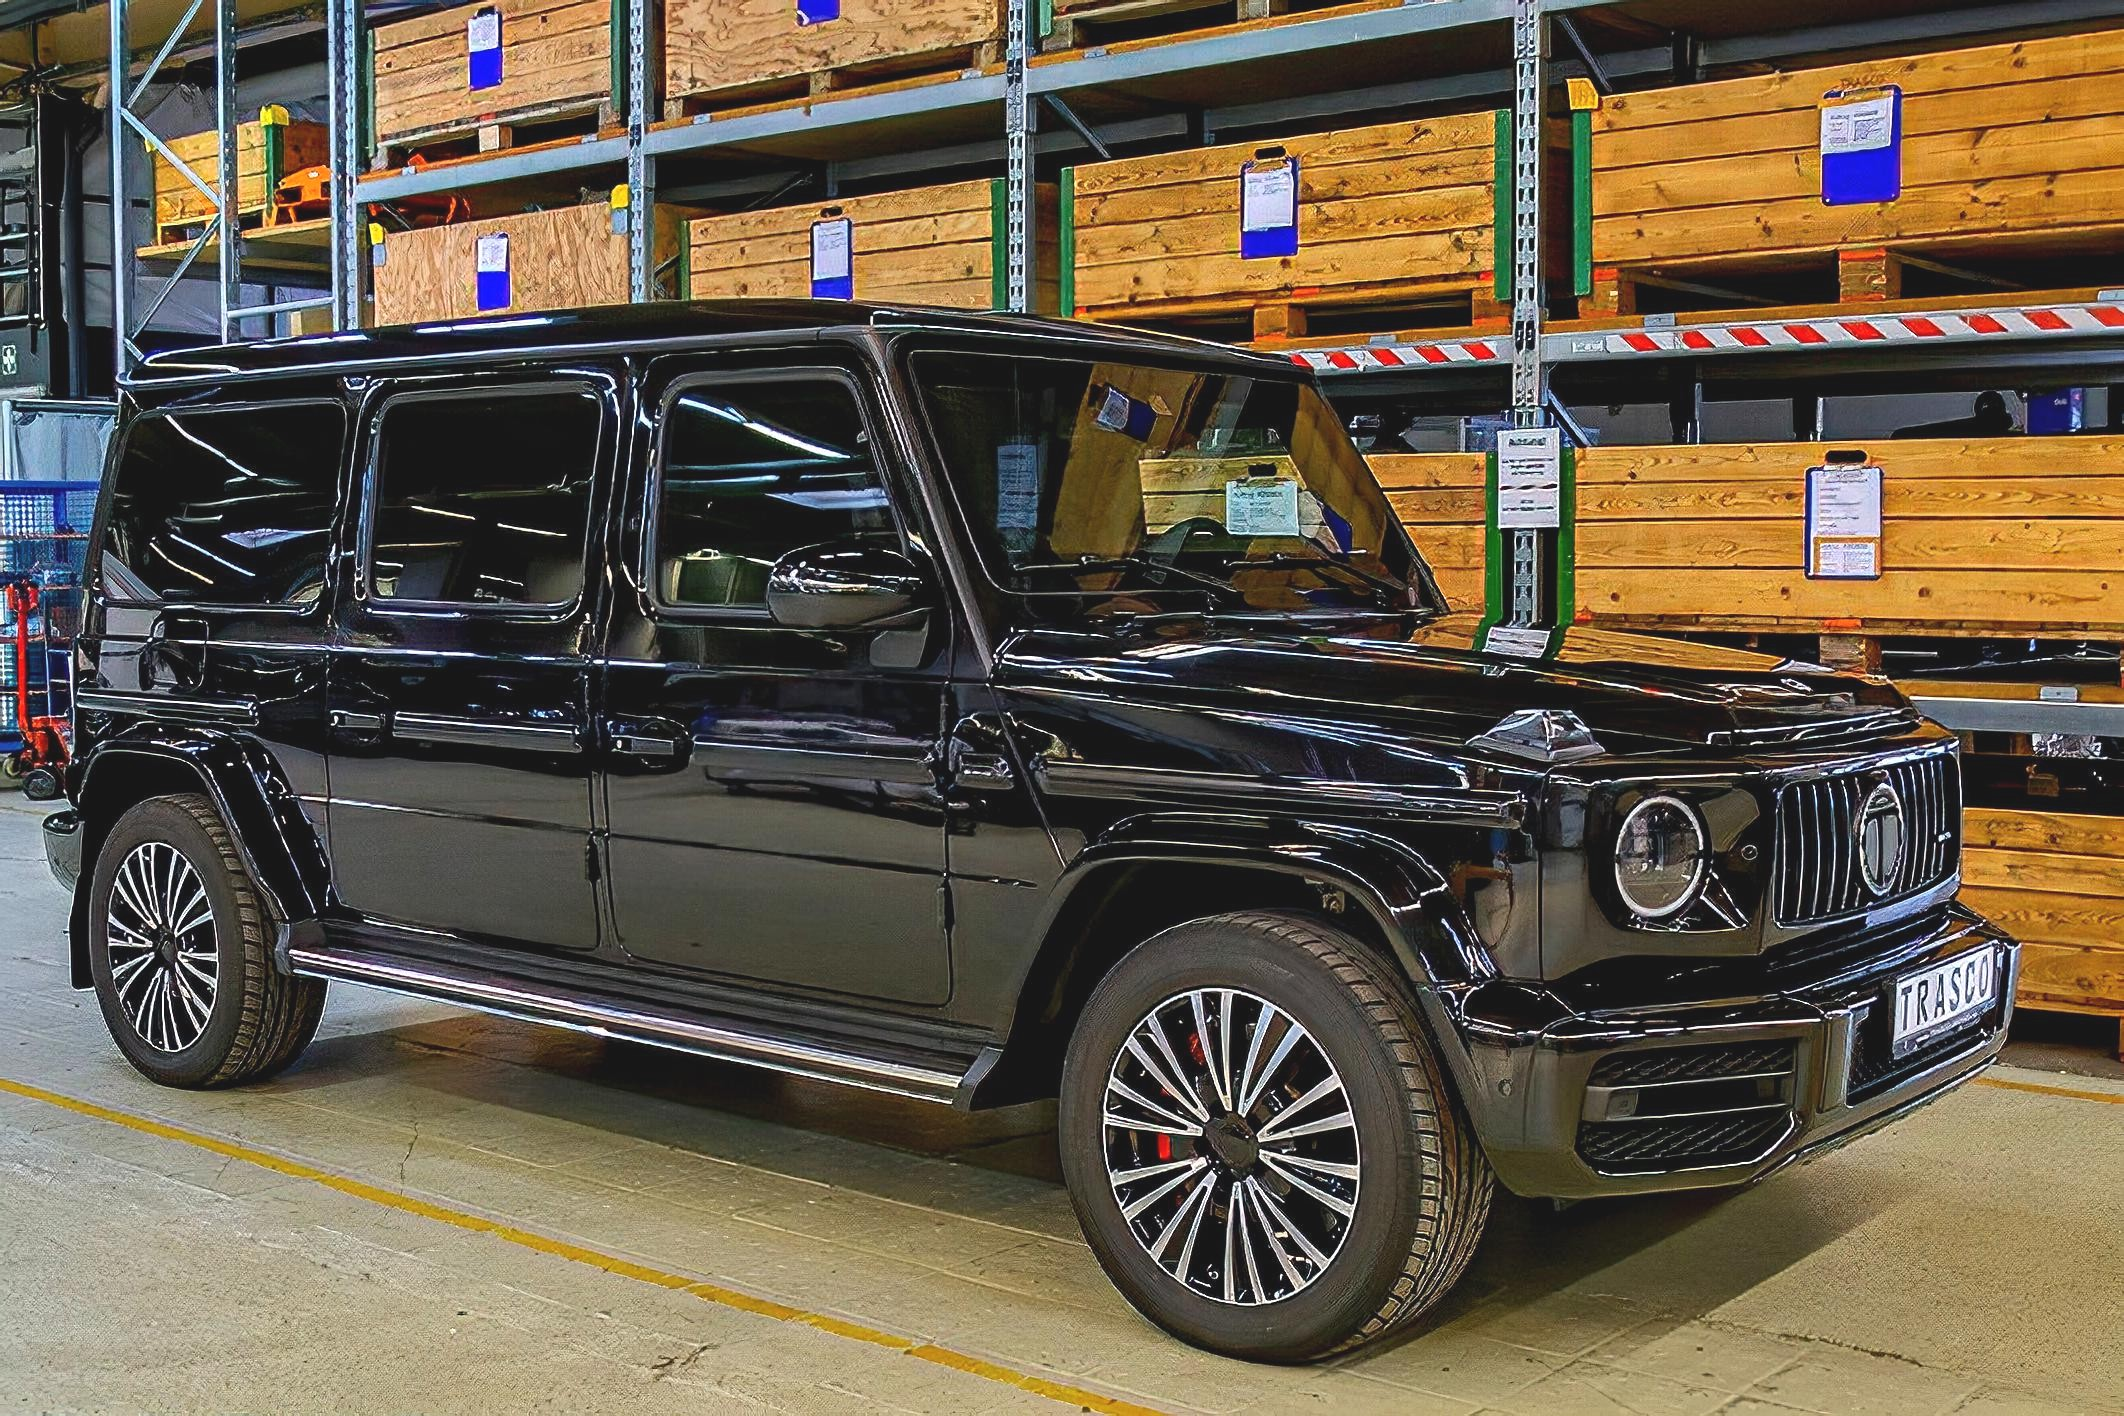 State-of-the-art armored cars: from Mercedes to Rolls-Royce and Aston Martin ()